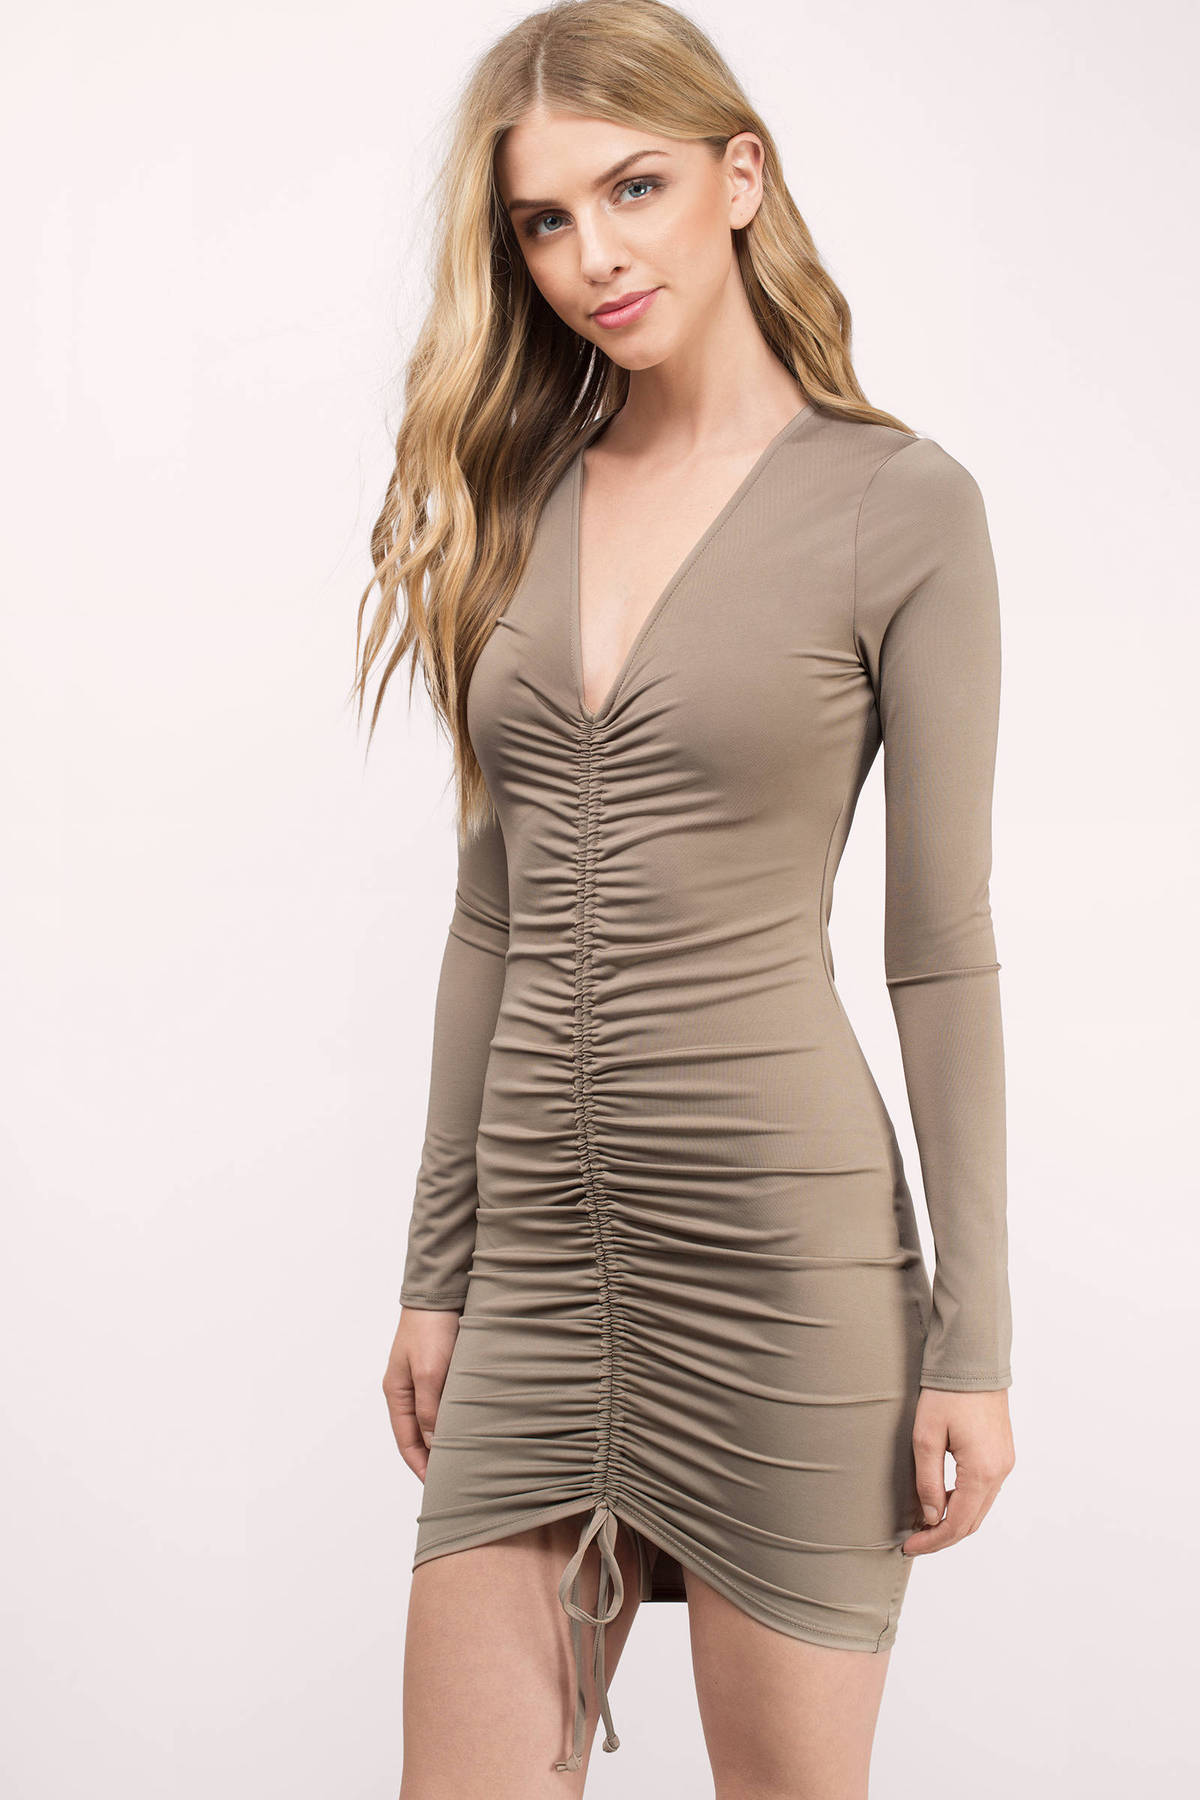 Wedding Ruched Dress sexy mocha bodycon dress brown ruched 29 00 helena jersey knitted dress